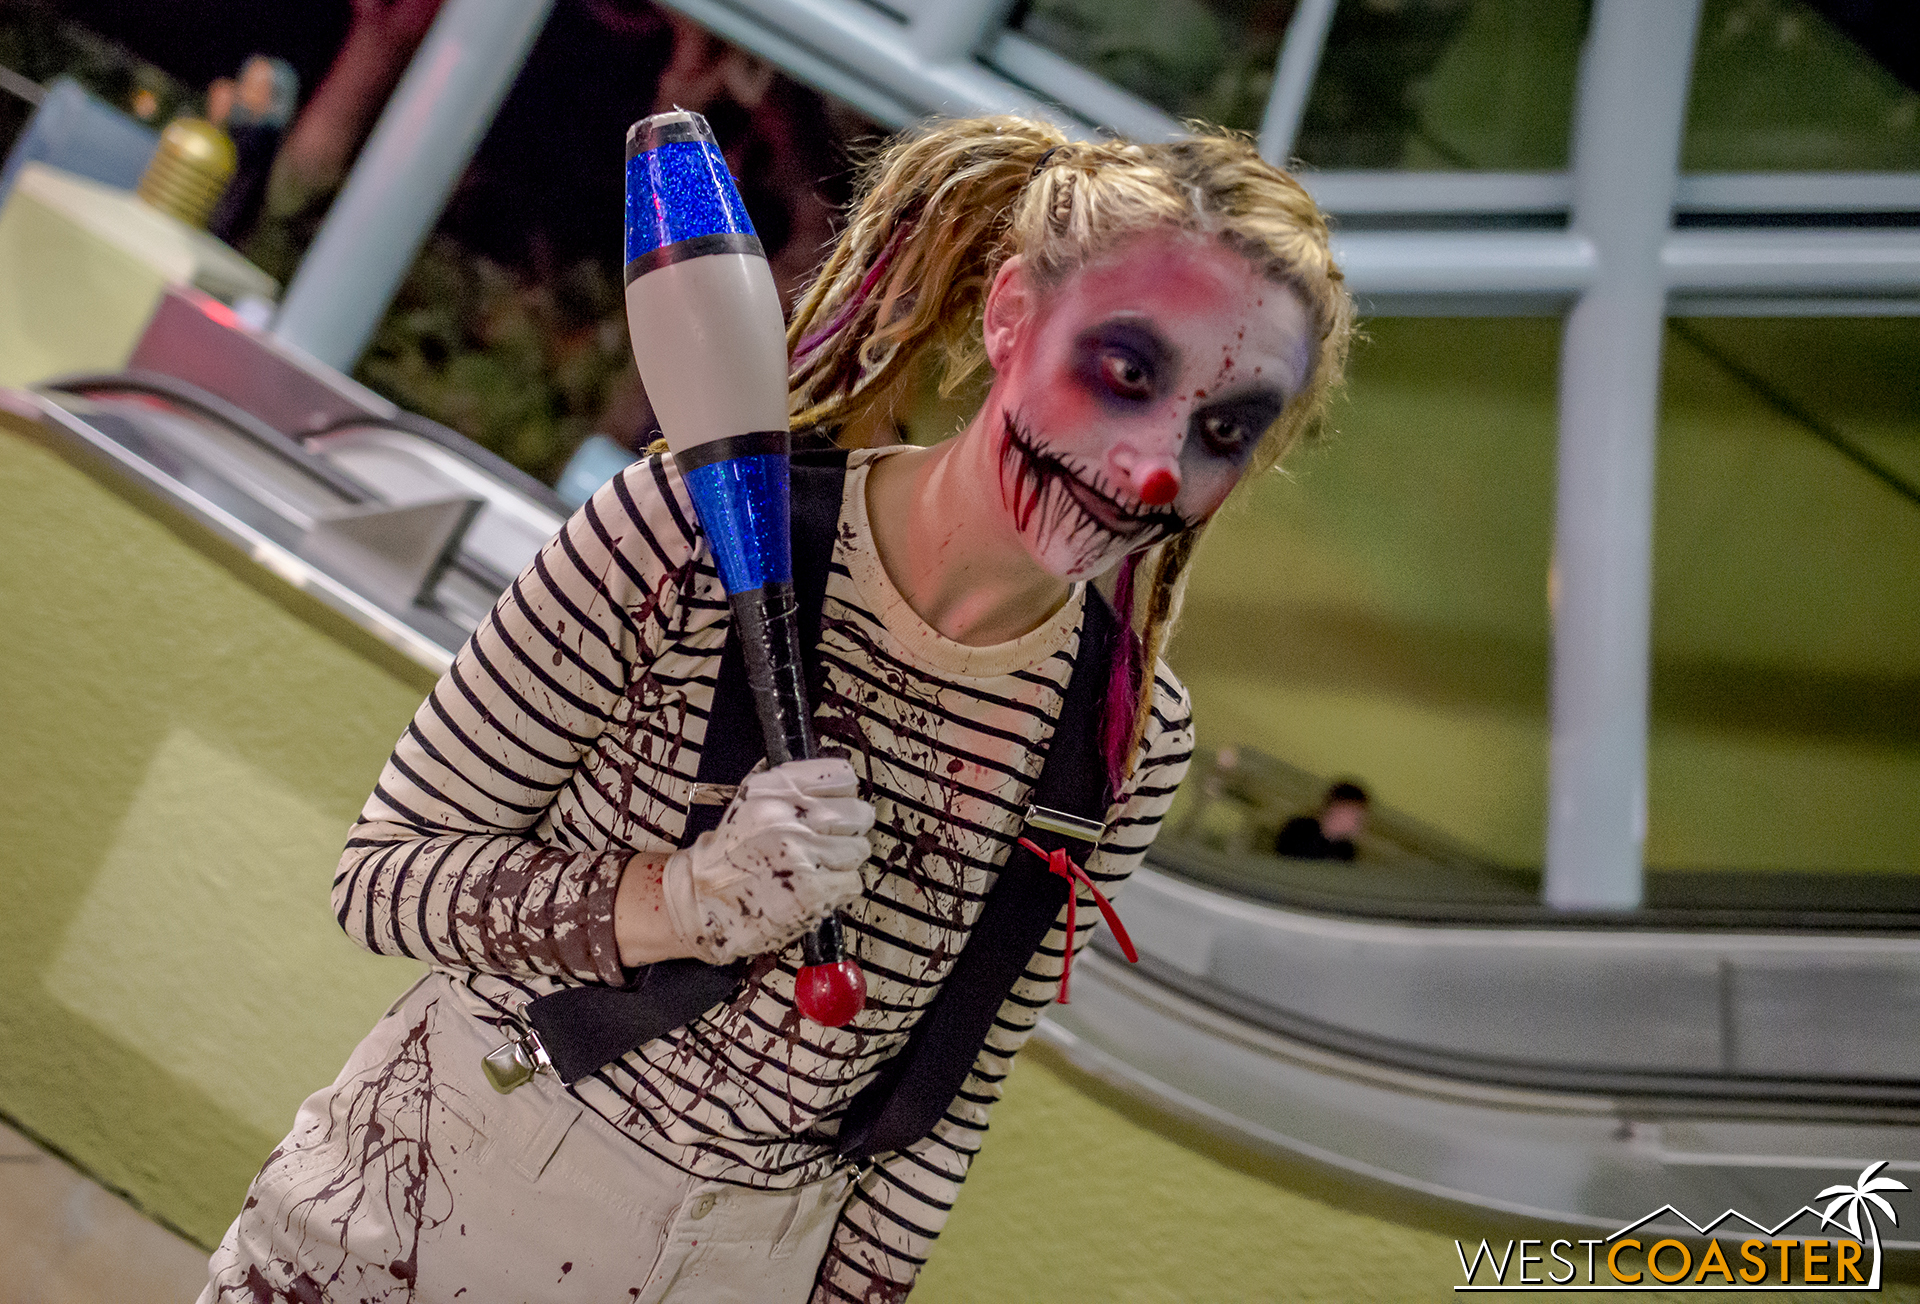 Guests coming down the escalator and getting into the Terror Tram line are greeted by roaming clowns as a taste for what's to come.